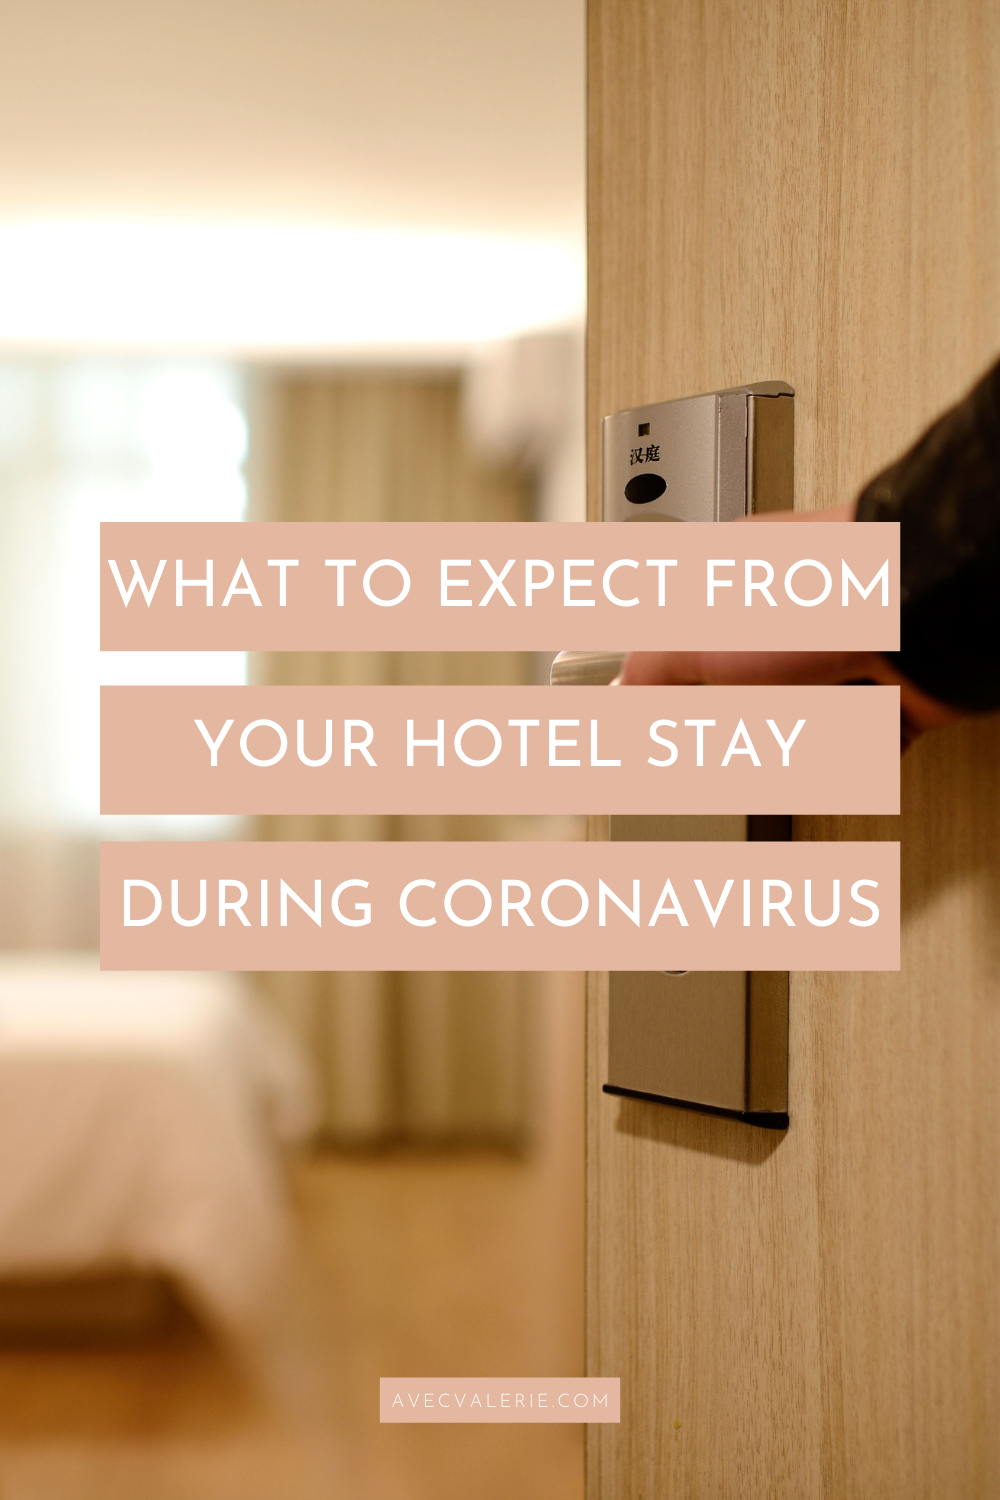 What to Expect from Your Hotel Stay During Coronavirus